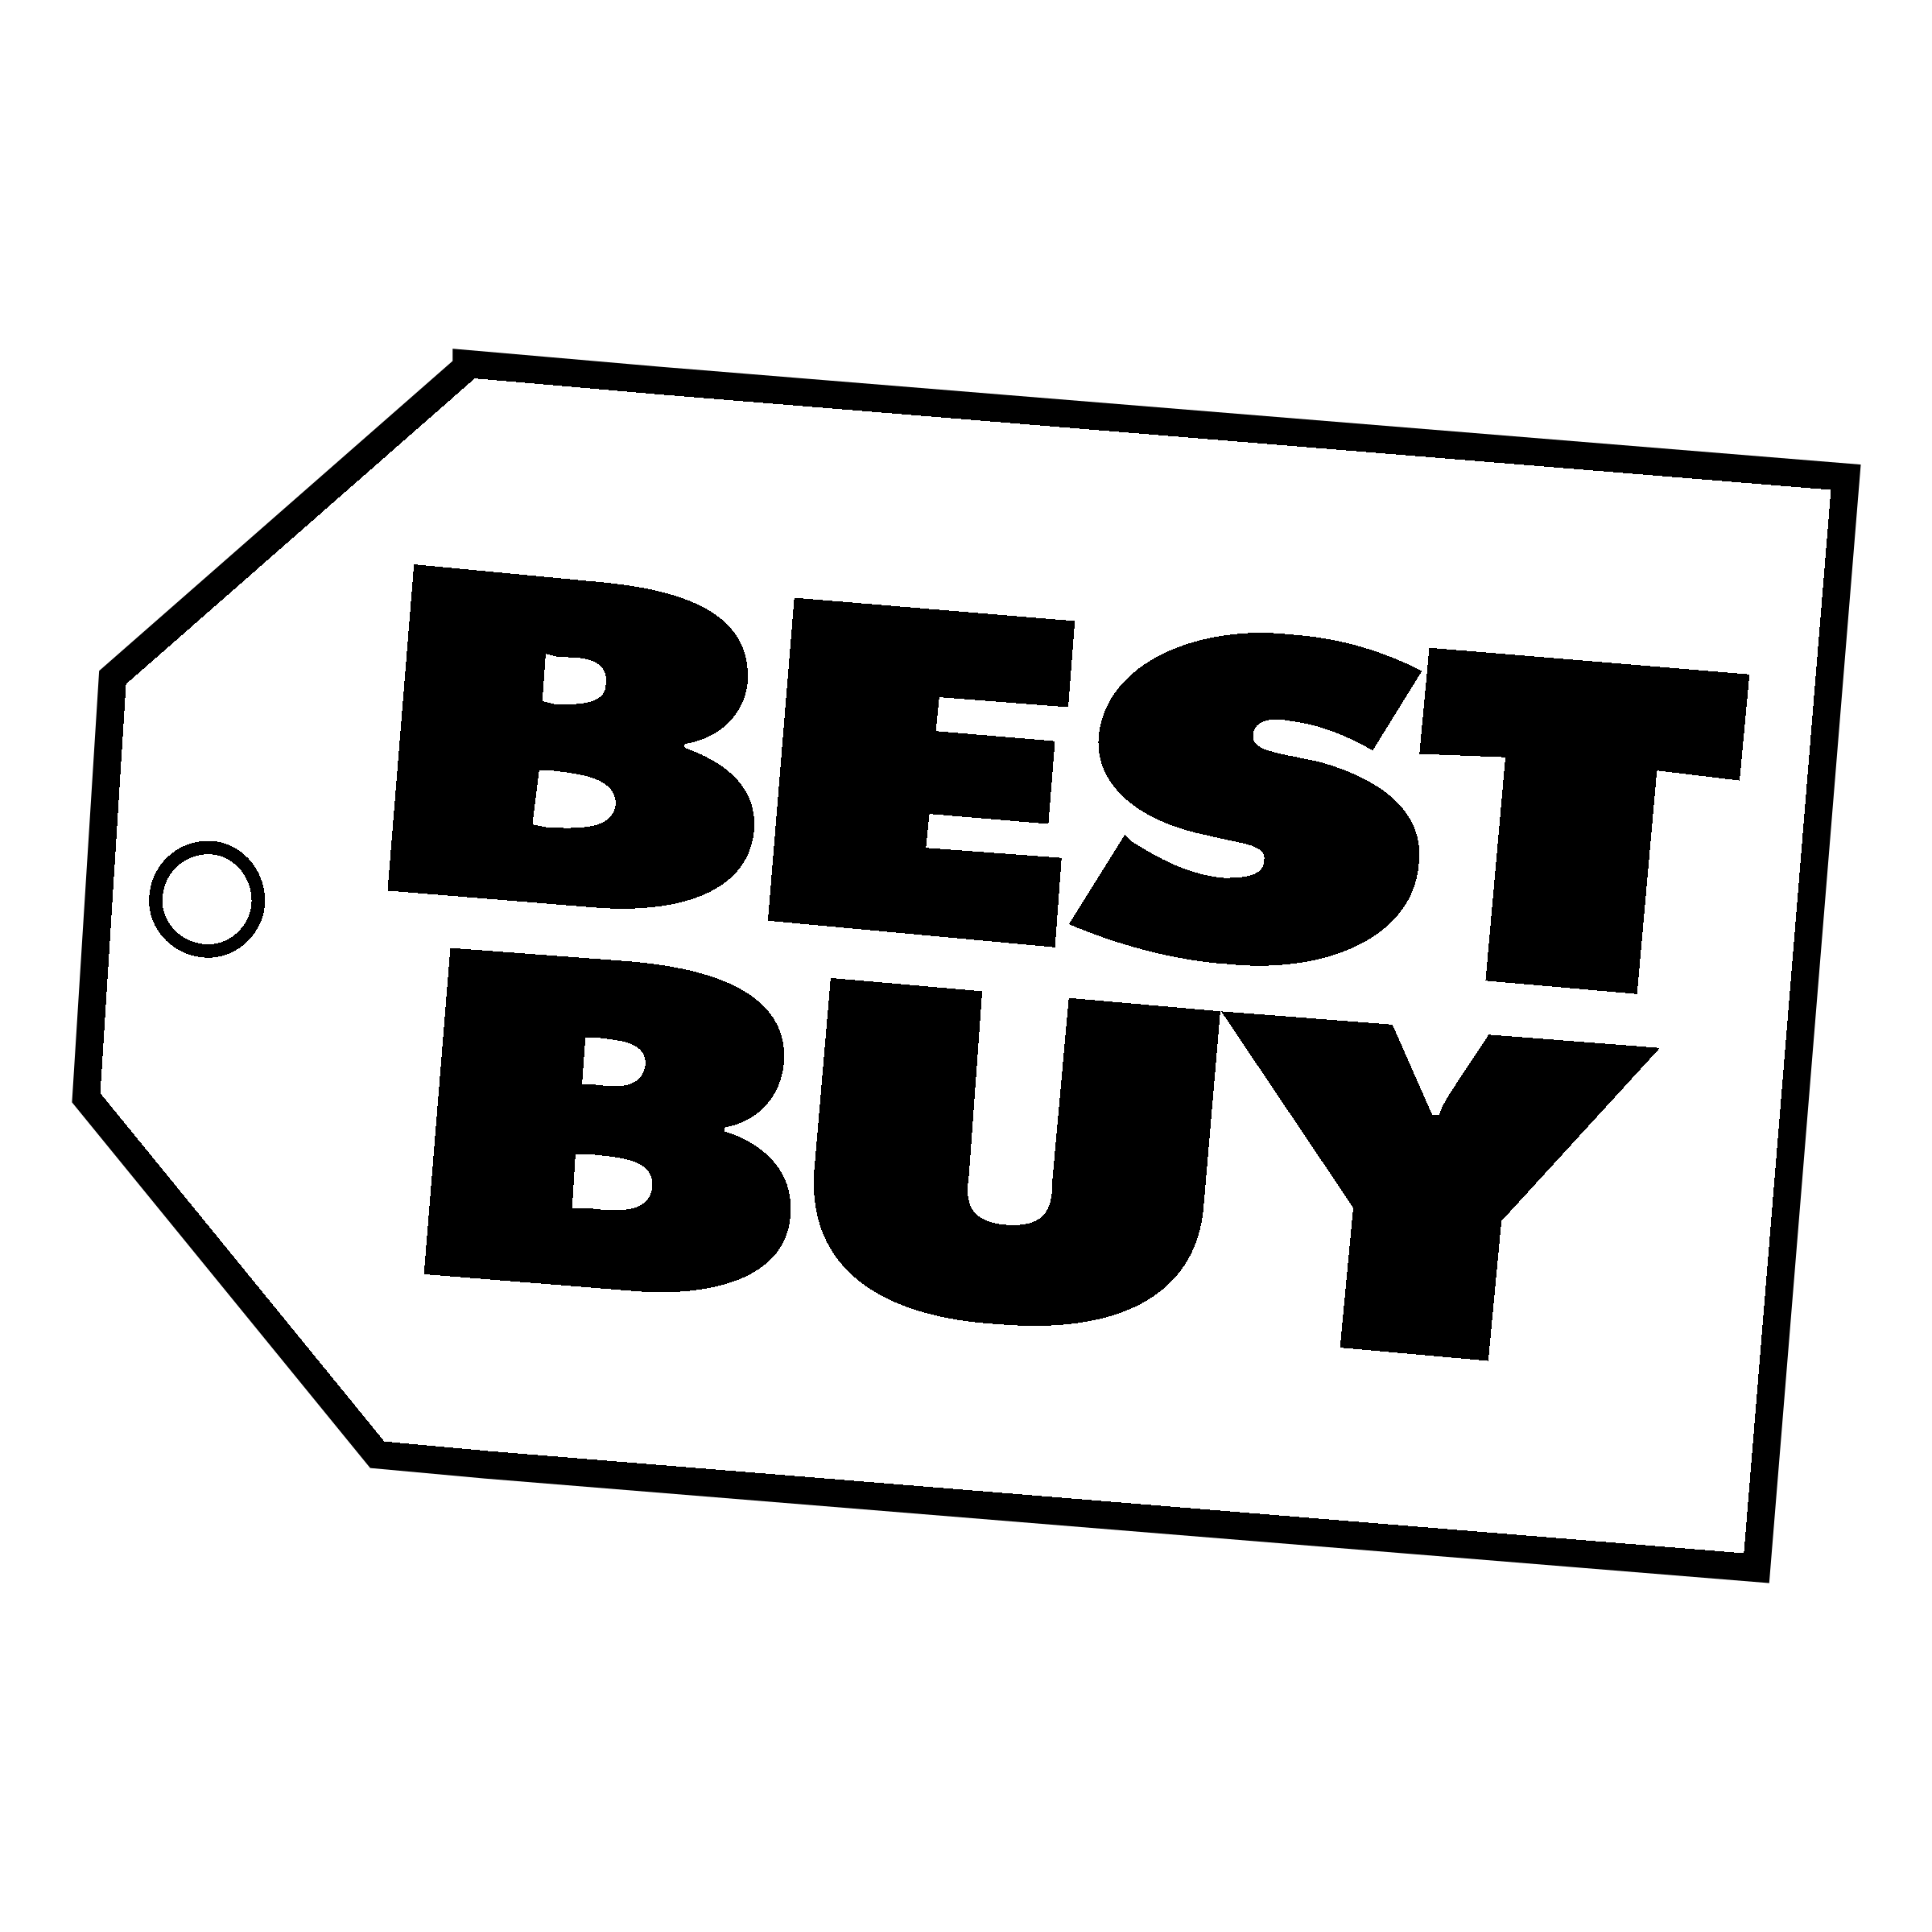 best-buy-logo-black-and-white (1).png